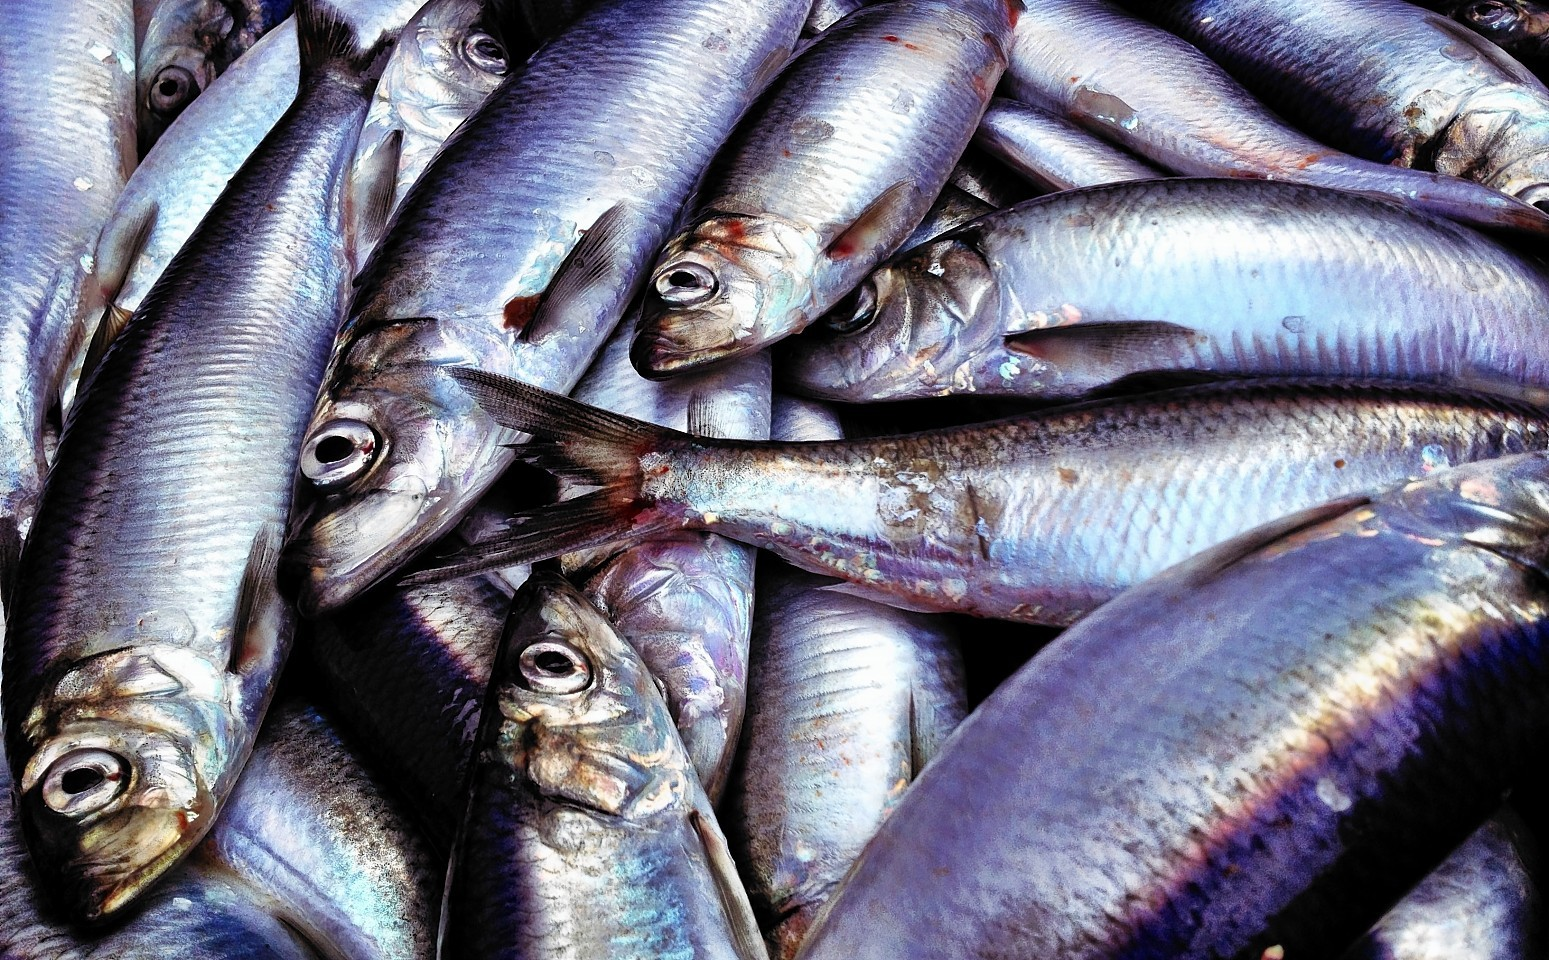 The row over herring catches goes on